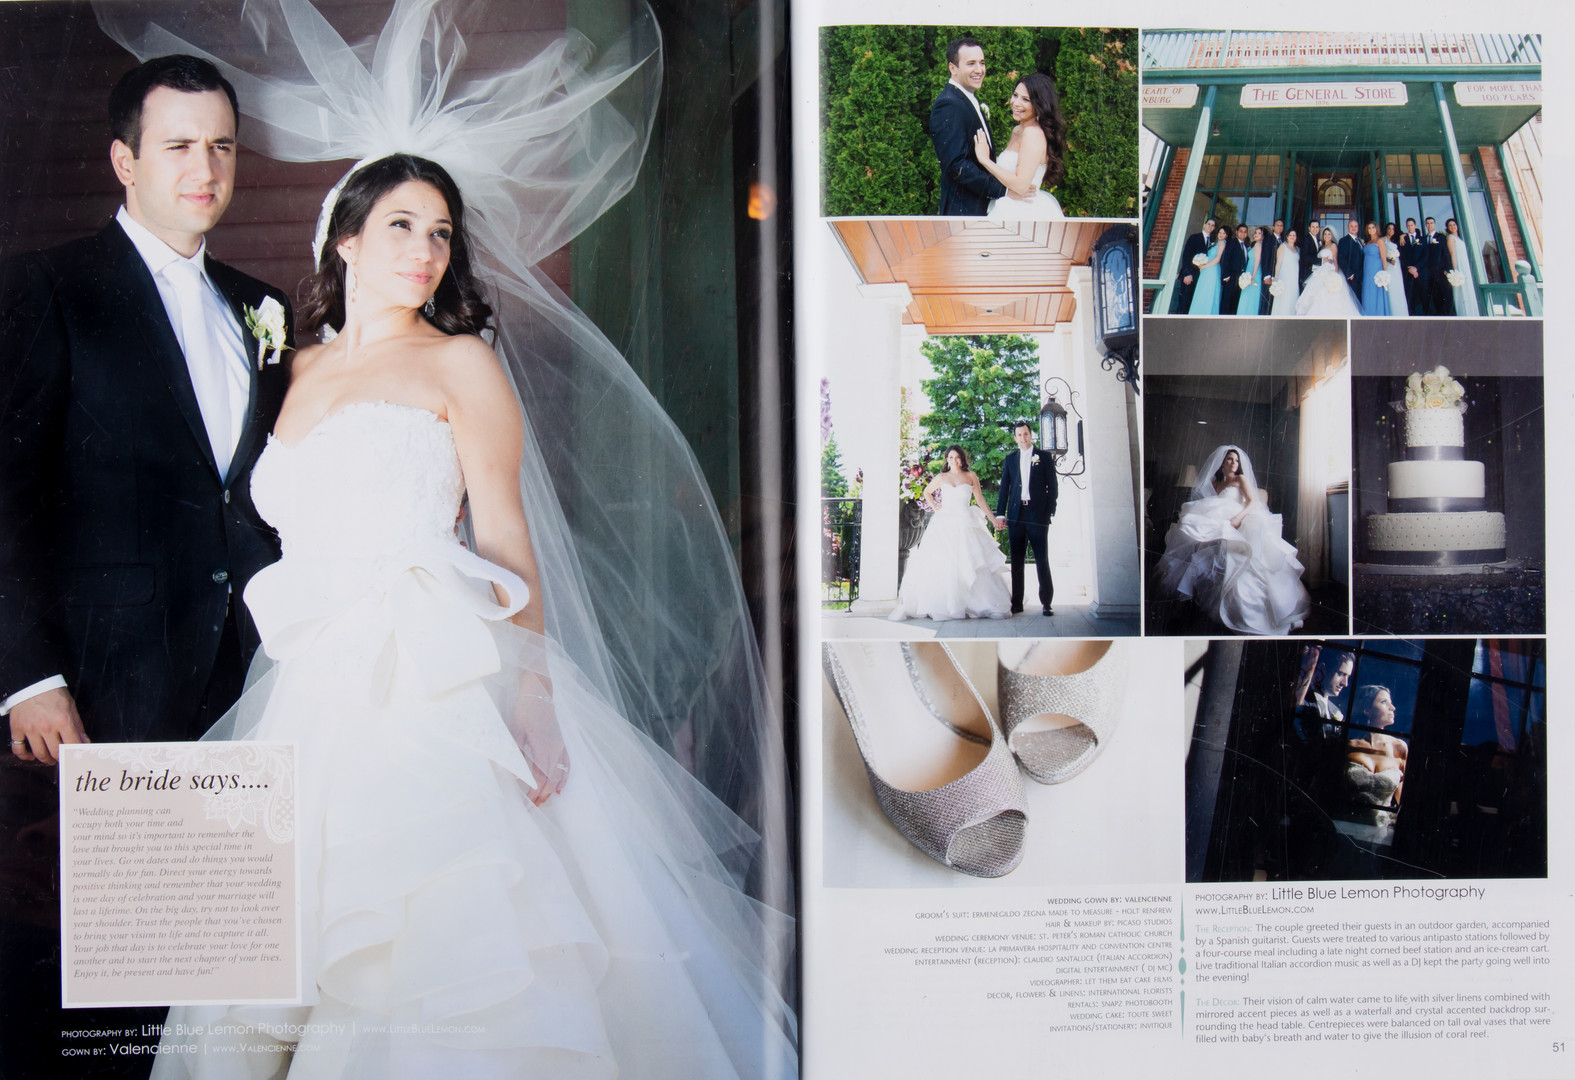 Toronto wedding photographer Little Blue Lemon published luxury bride in Valencienne gown